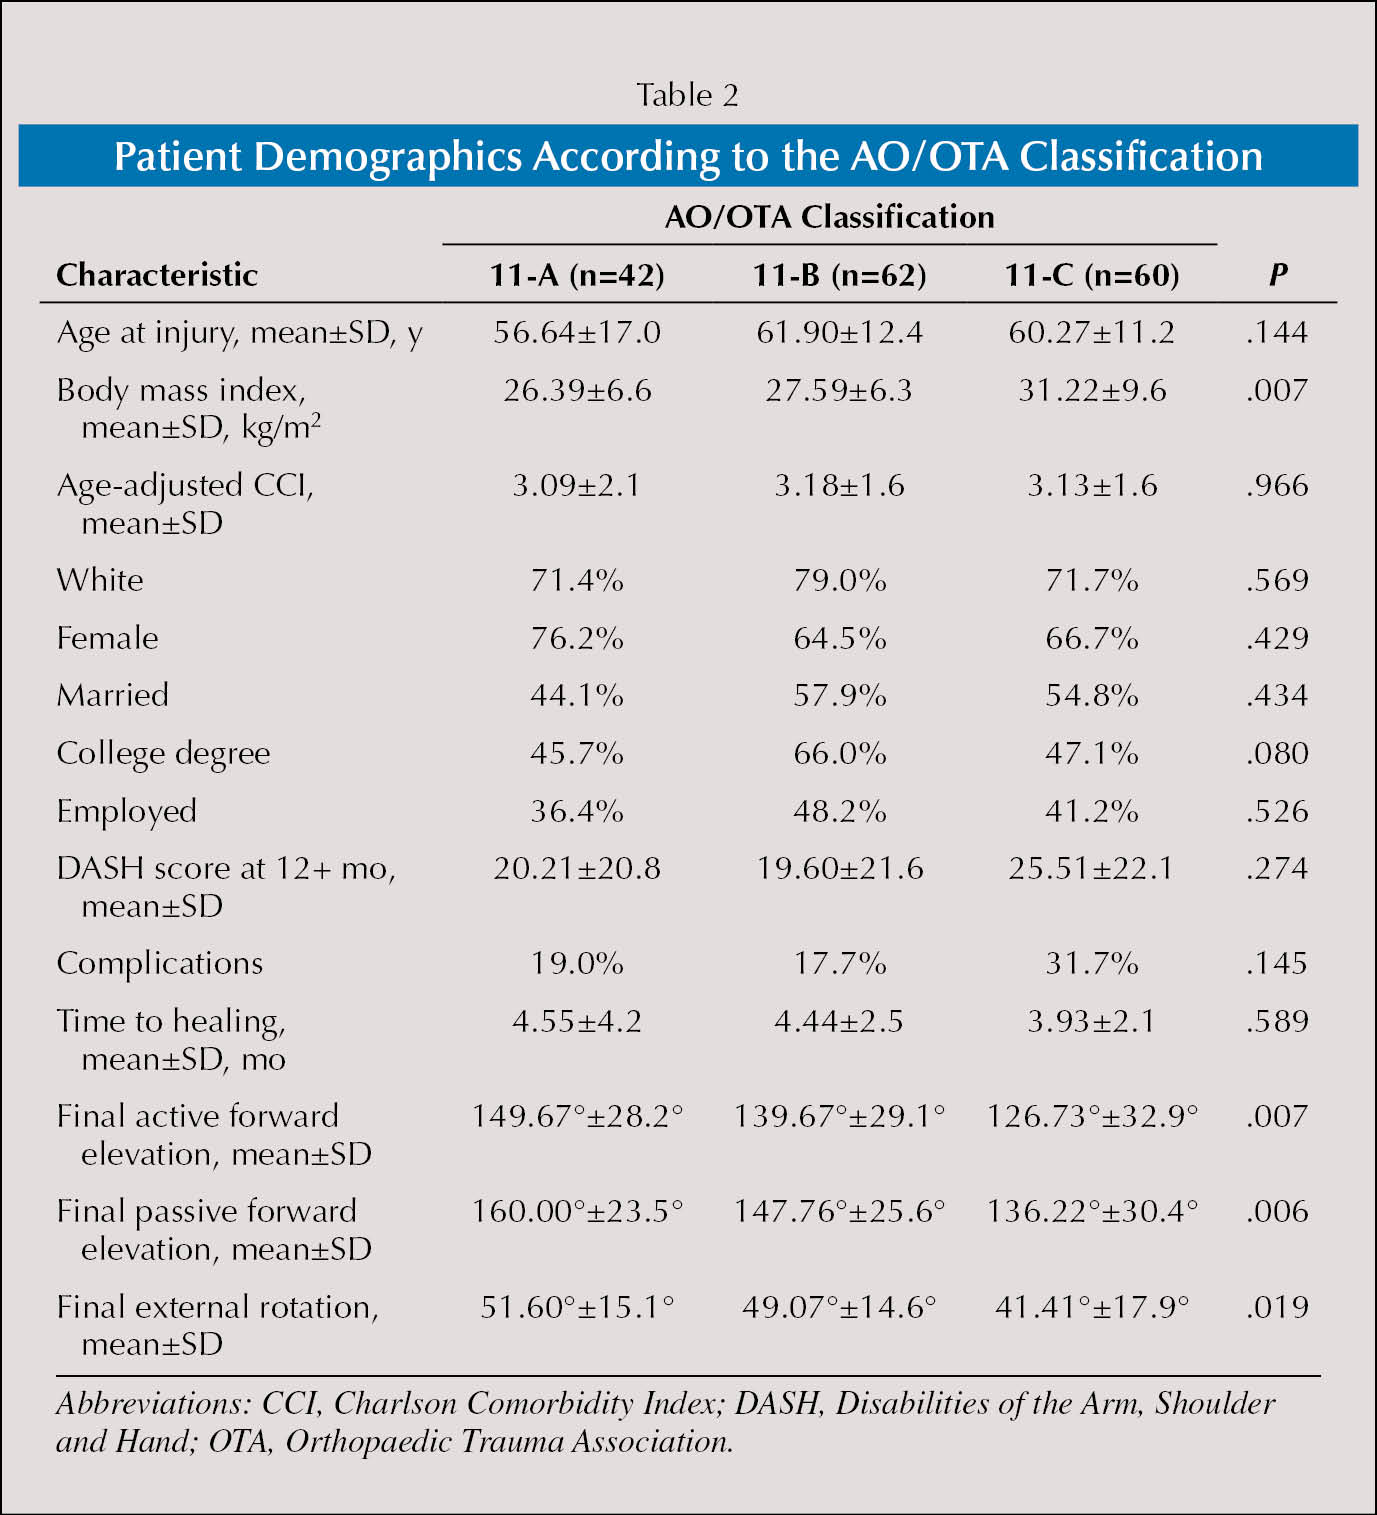 Patient Demographics According to the AO/OTA Classification